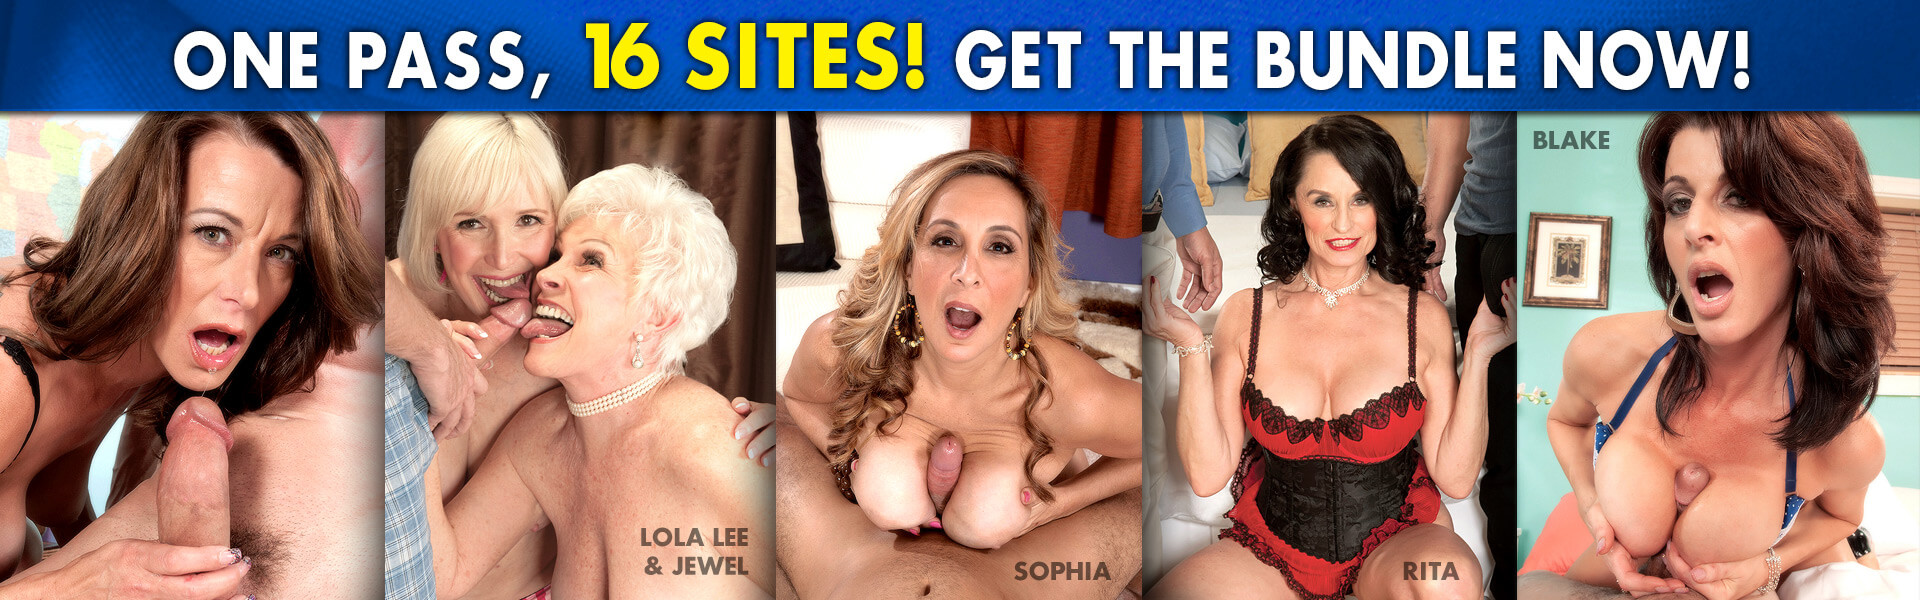 MILF home - Join Now!